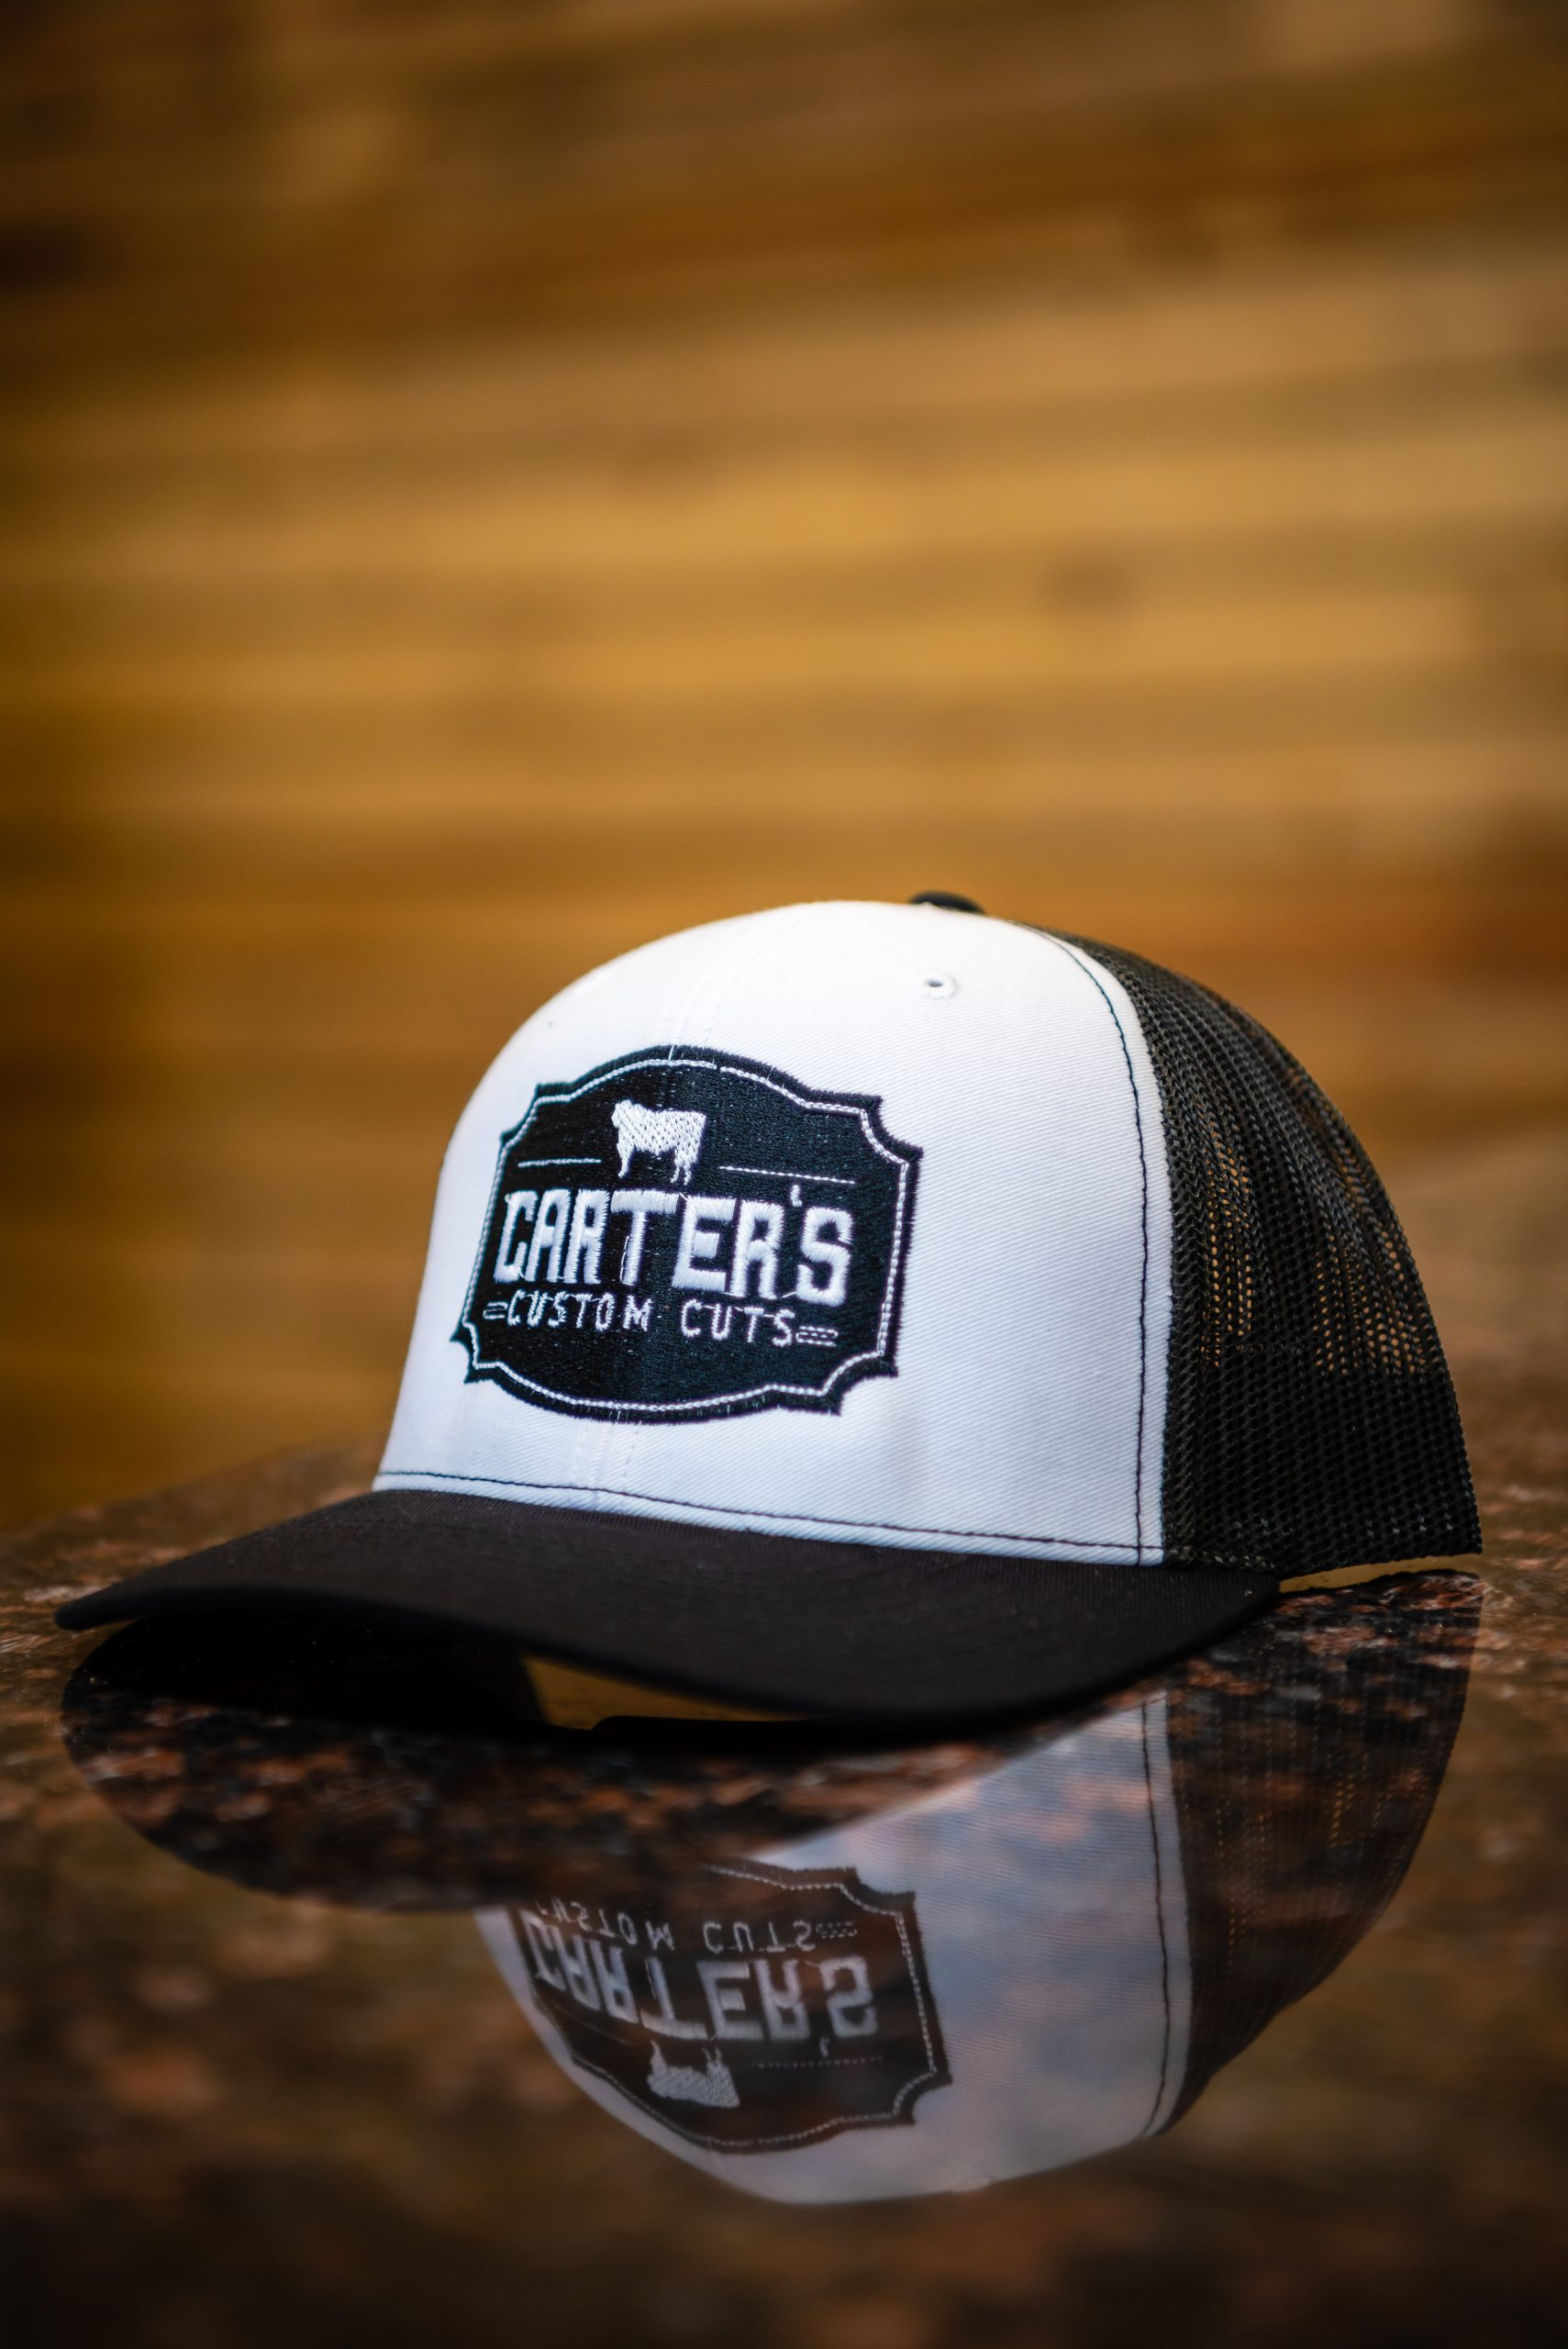 carters-custom-cuts-5_44352667101_o